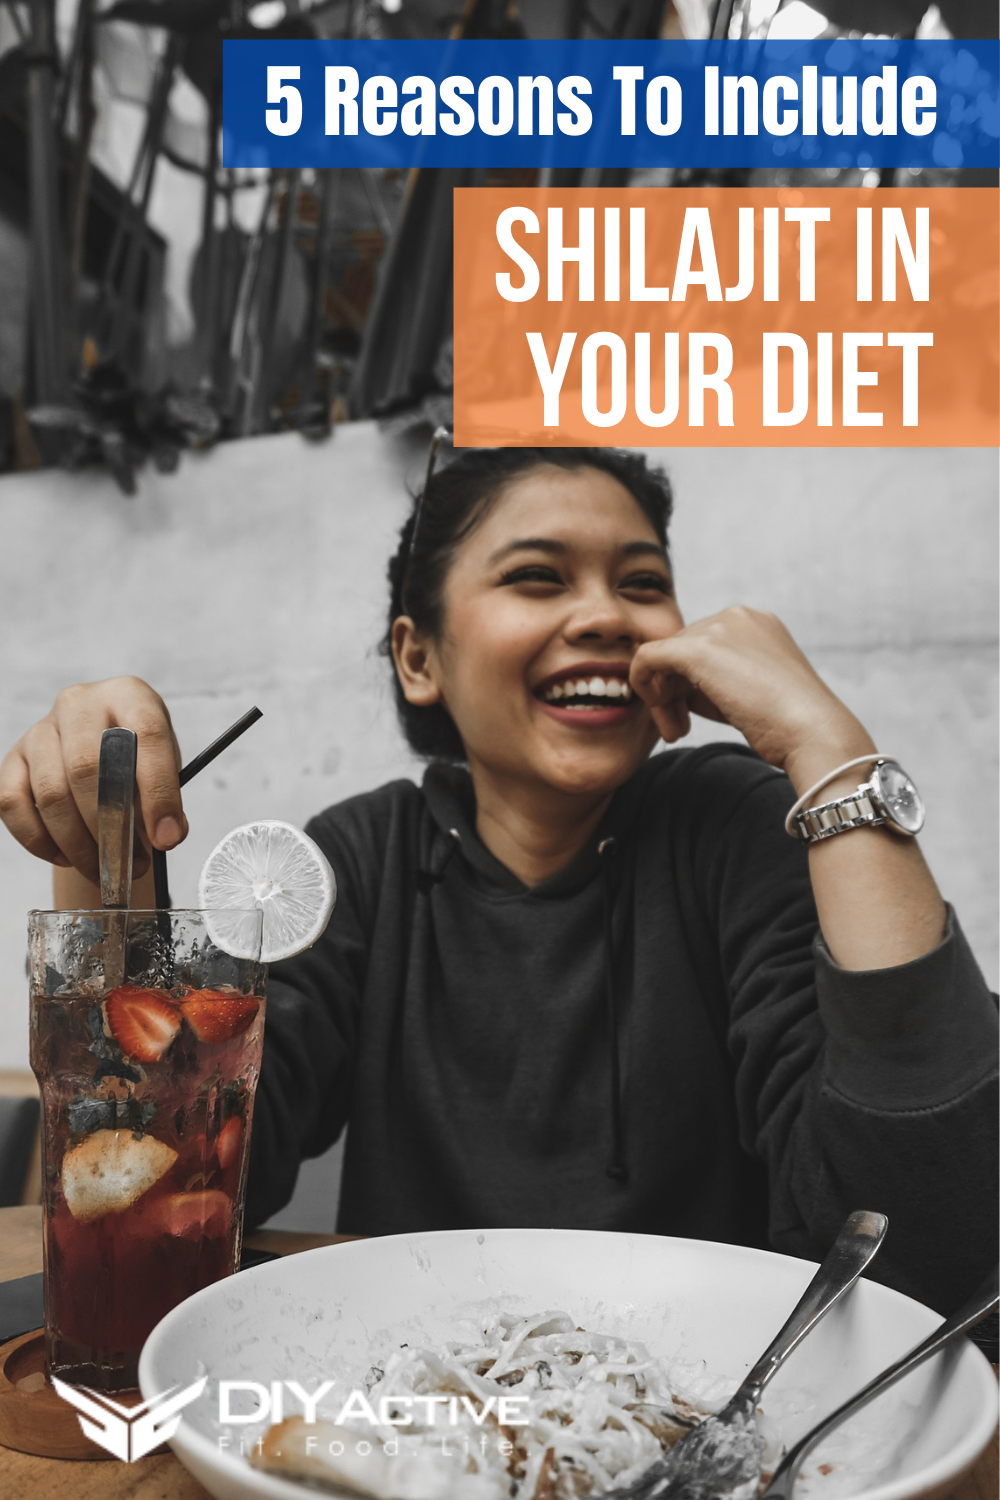 5 Reasons To Include Shilajit in Your Diet